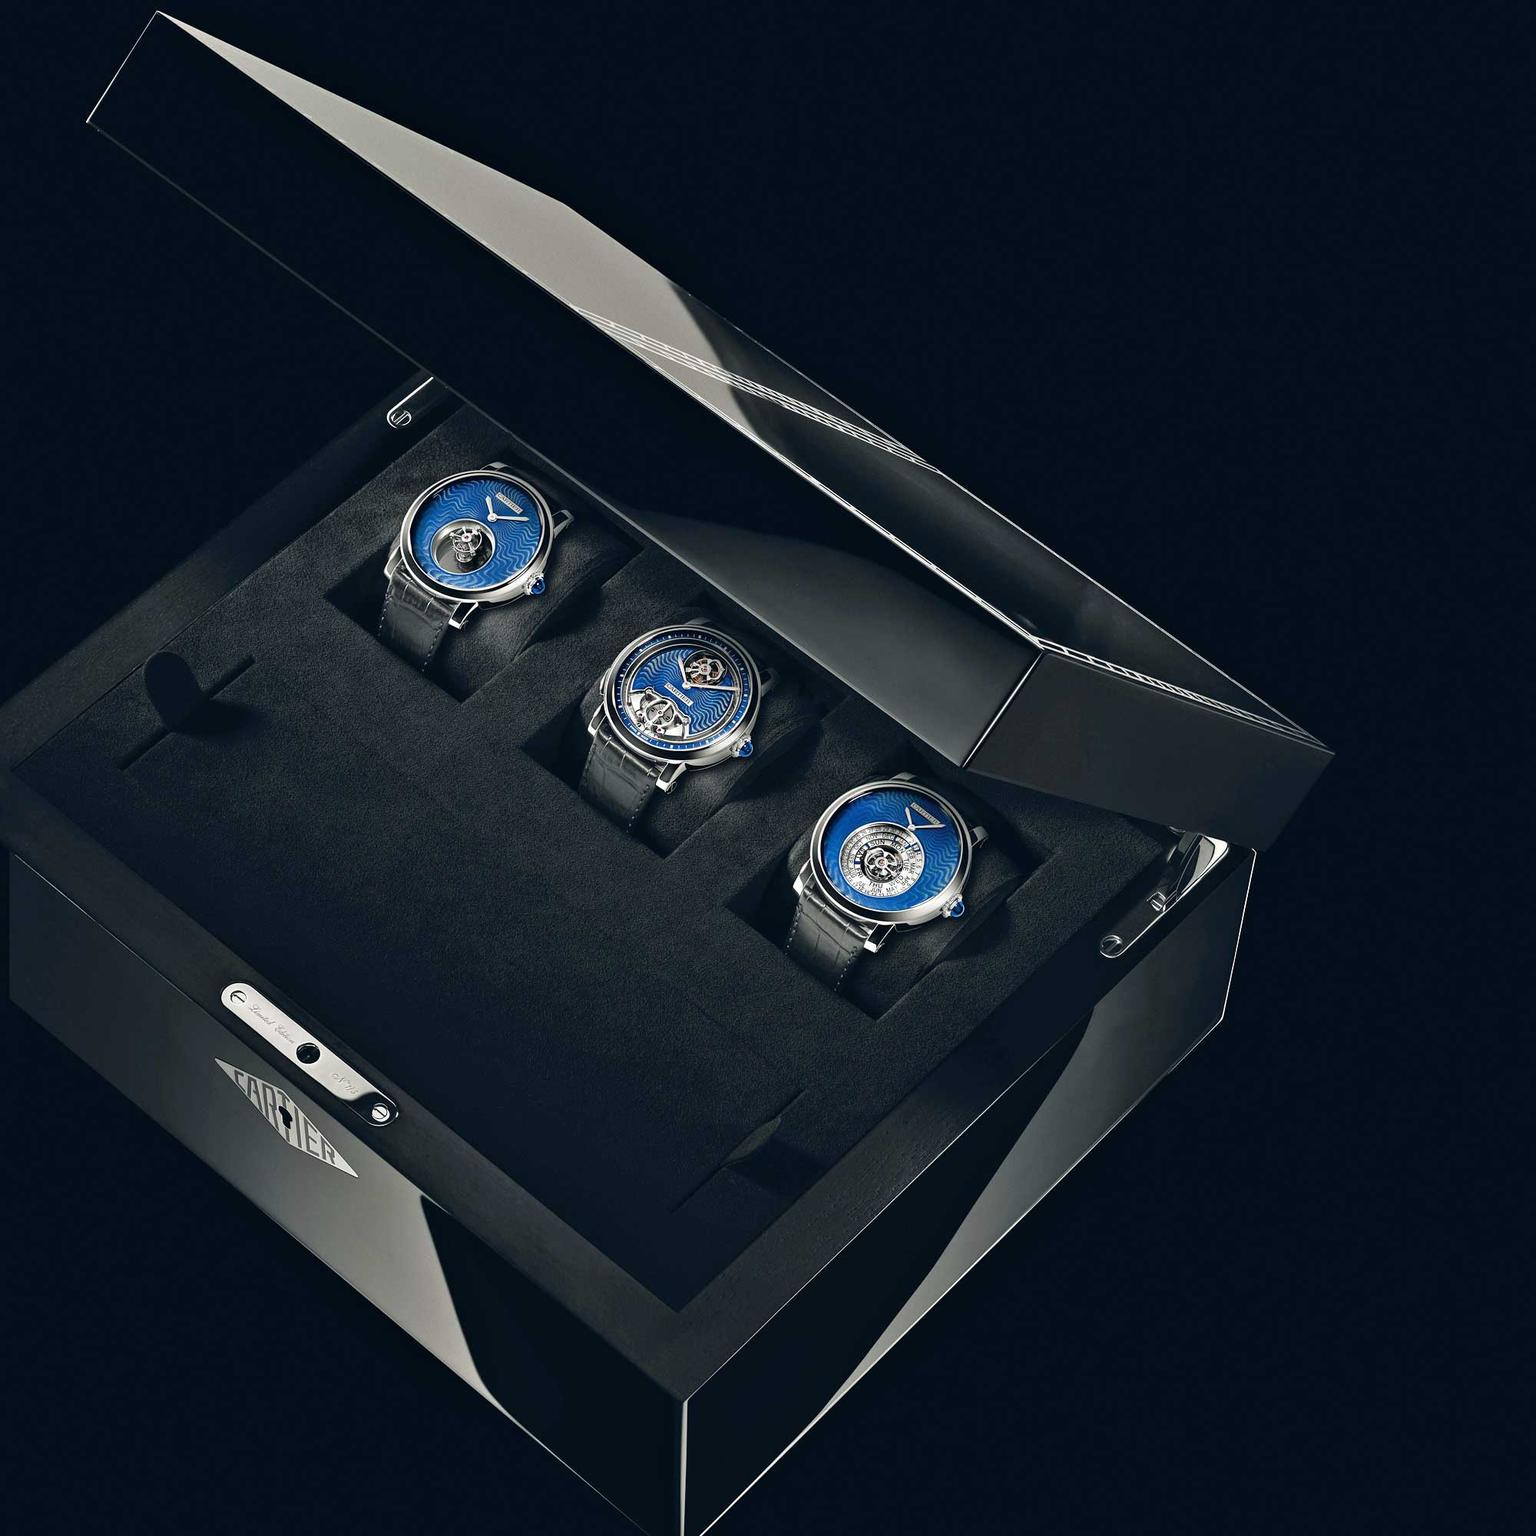 Rotonde de Cartier limited edition box